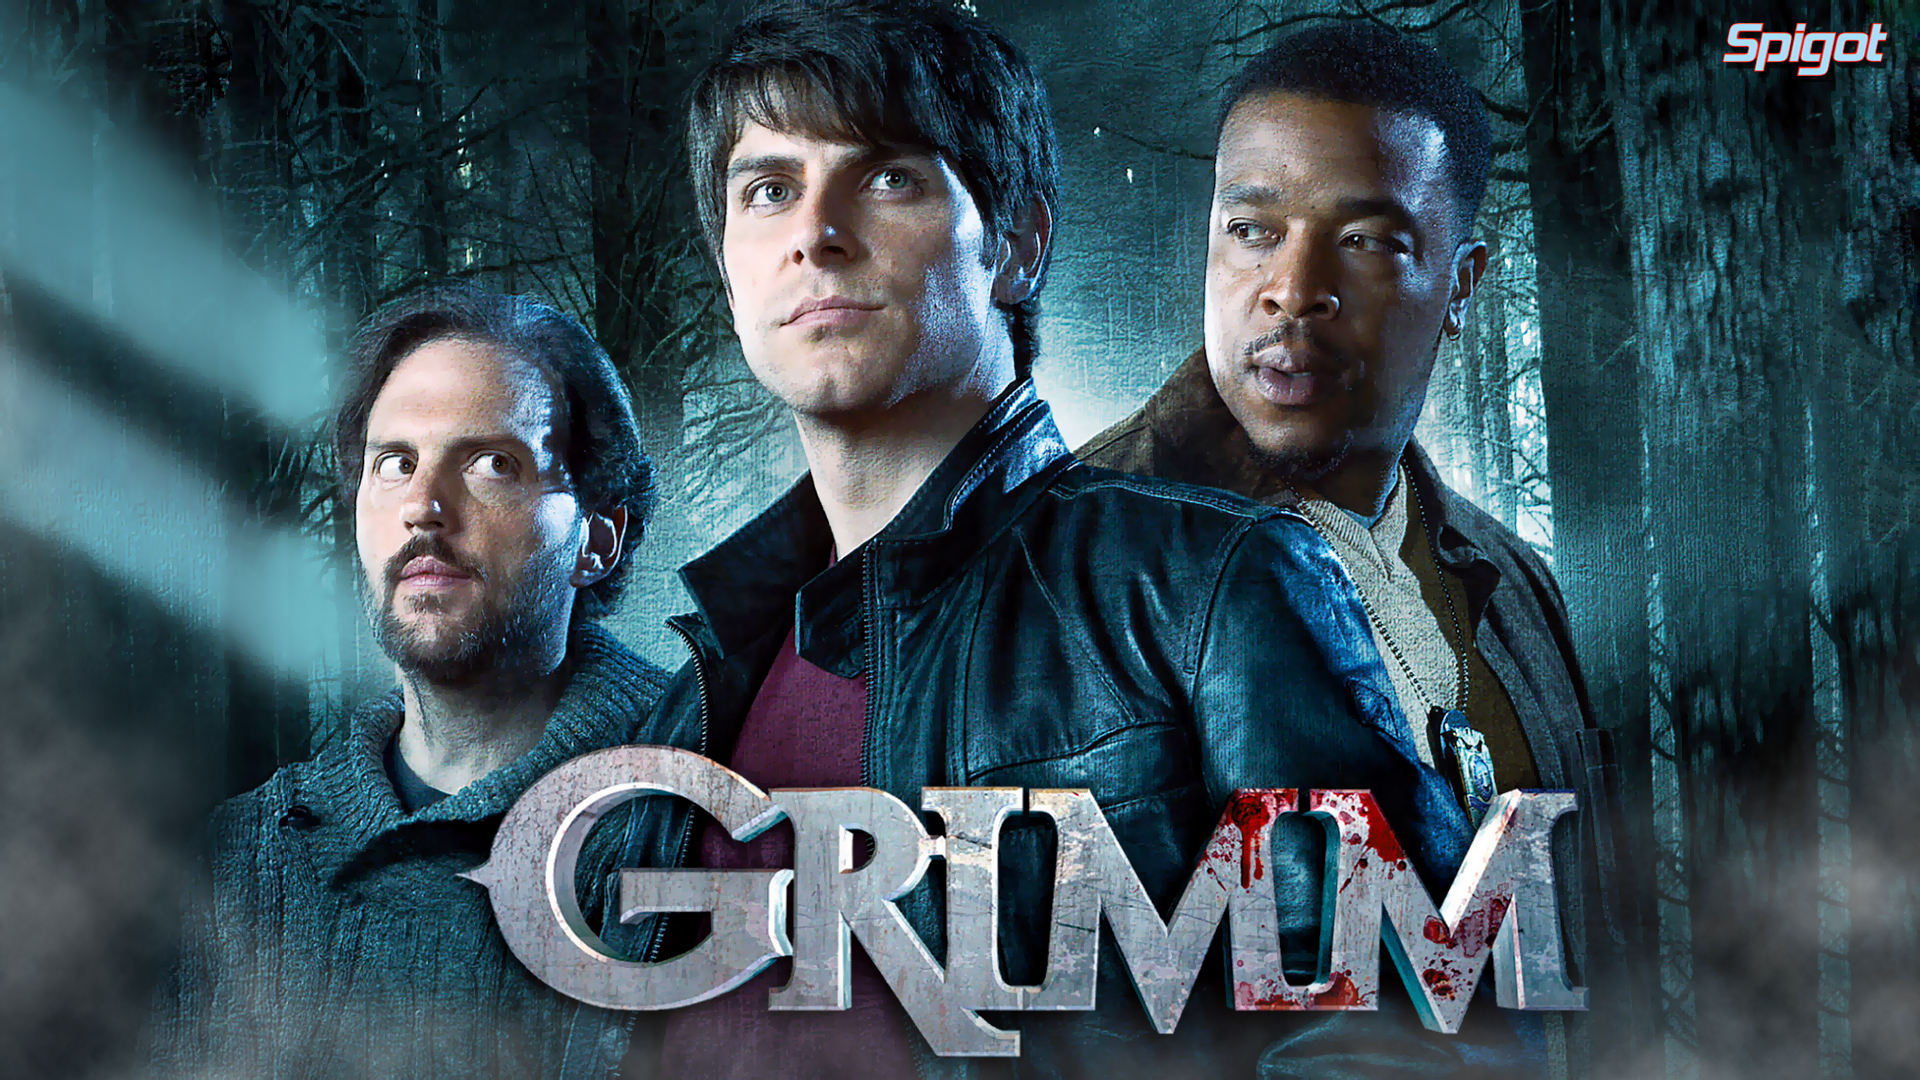 grimm 05 11 Download Grimm S03E19 Legenda HDTV + 720p